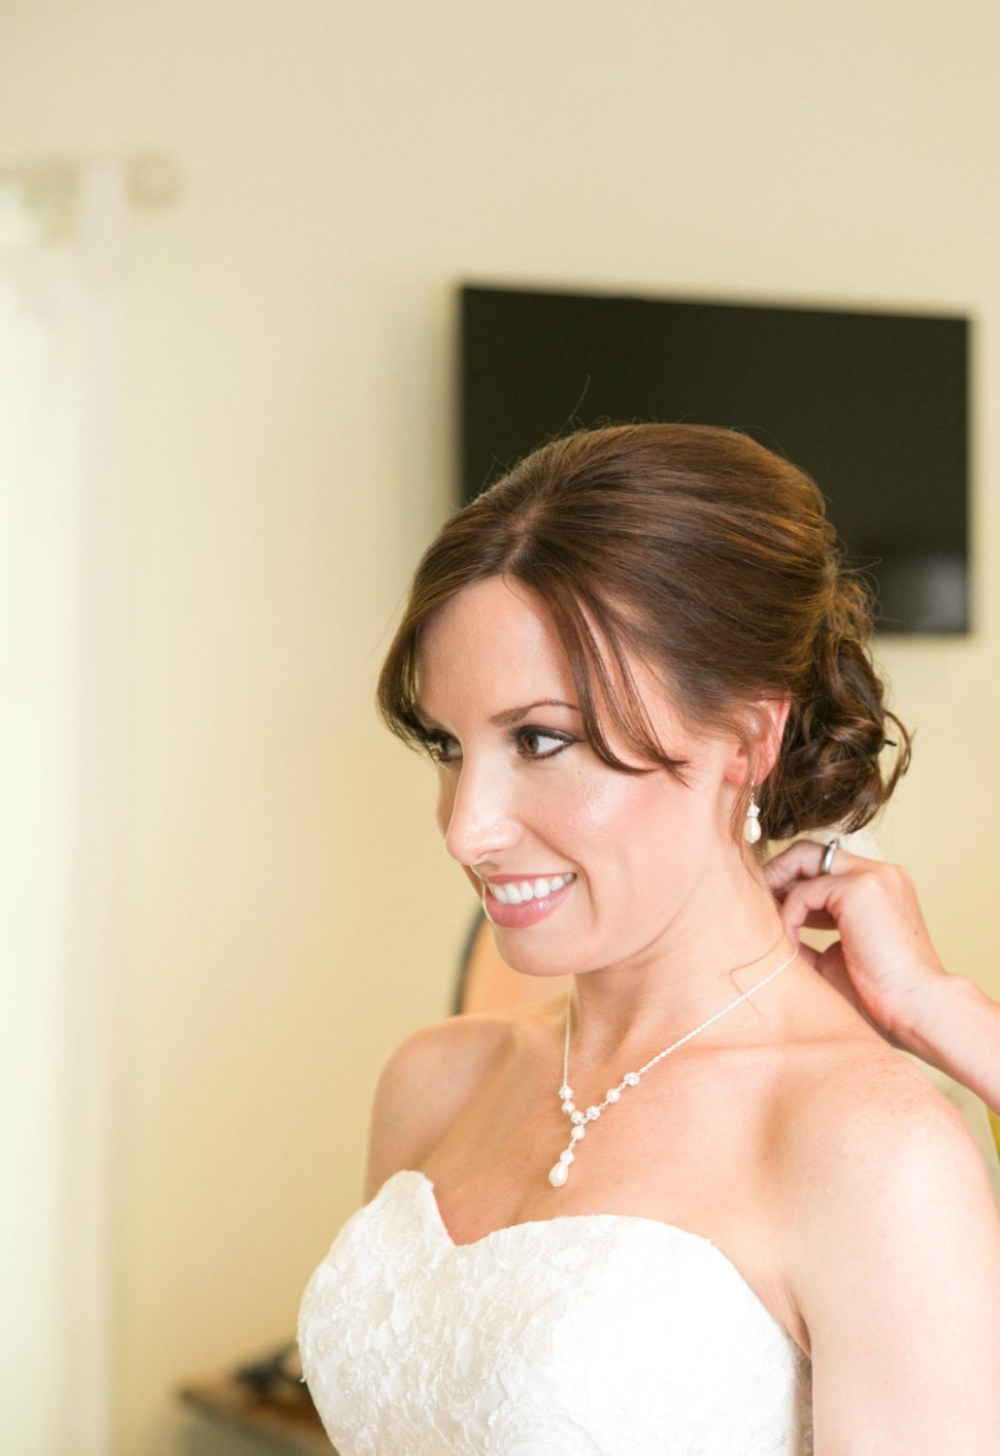 Evelyn_Stylish Silver Bridal Necklace with Pearls and Crystals